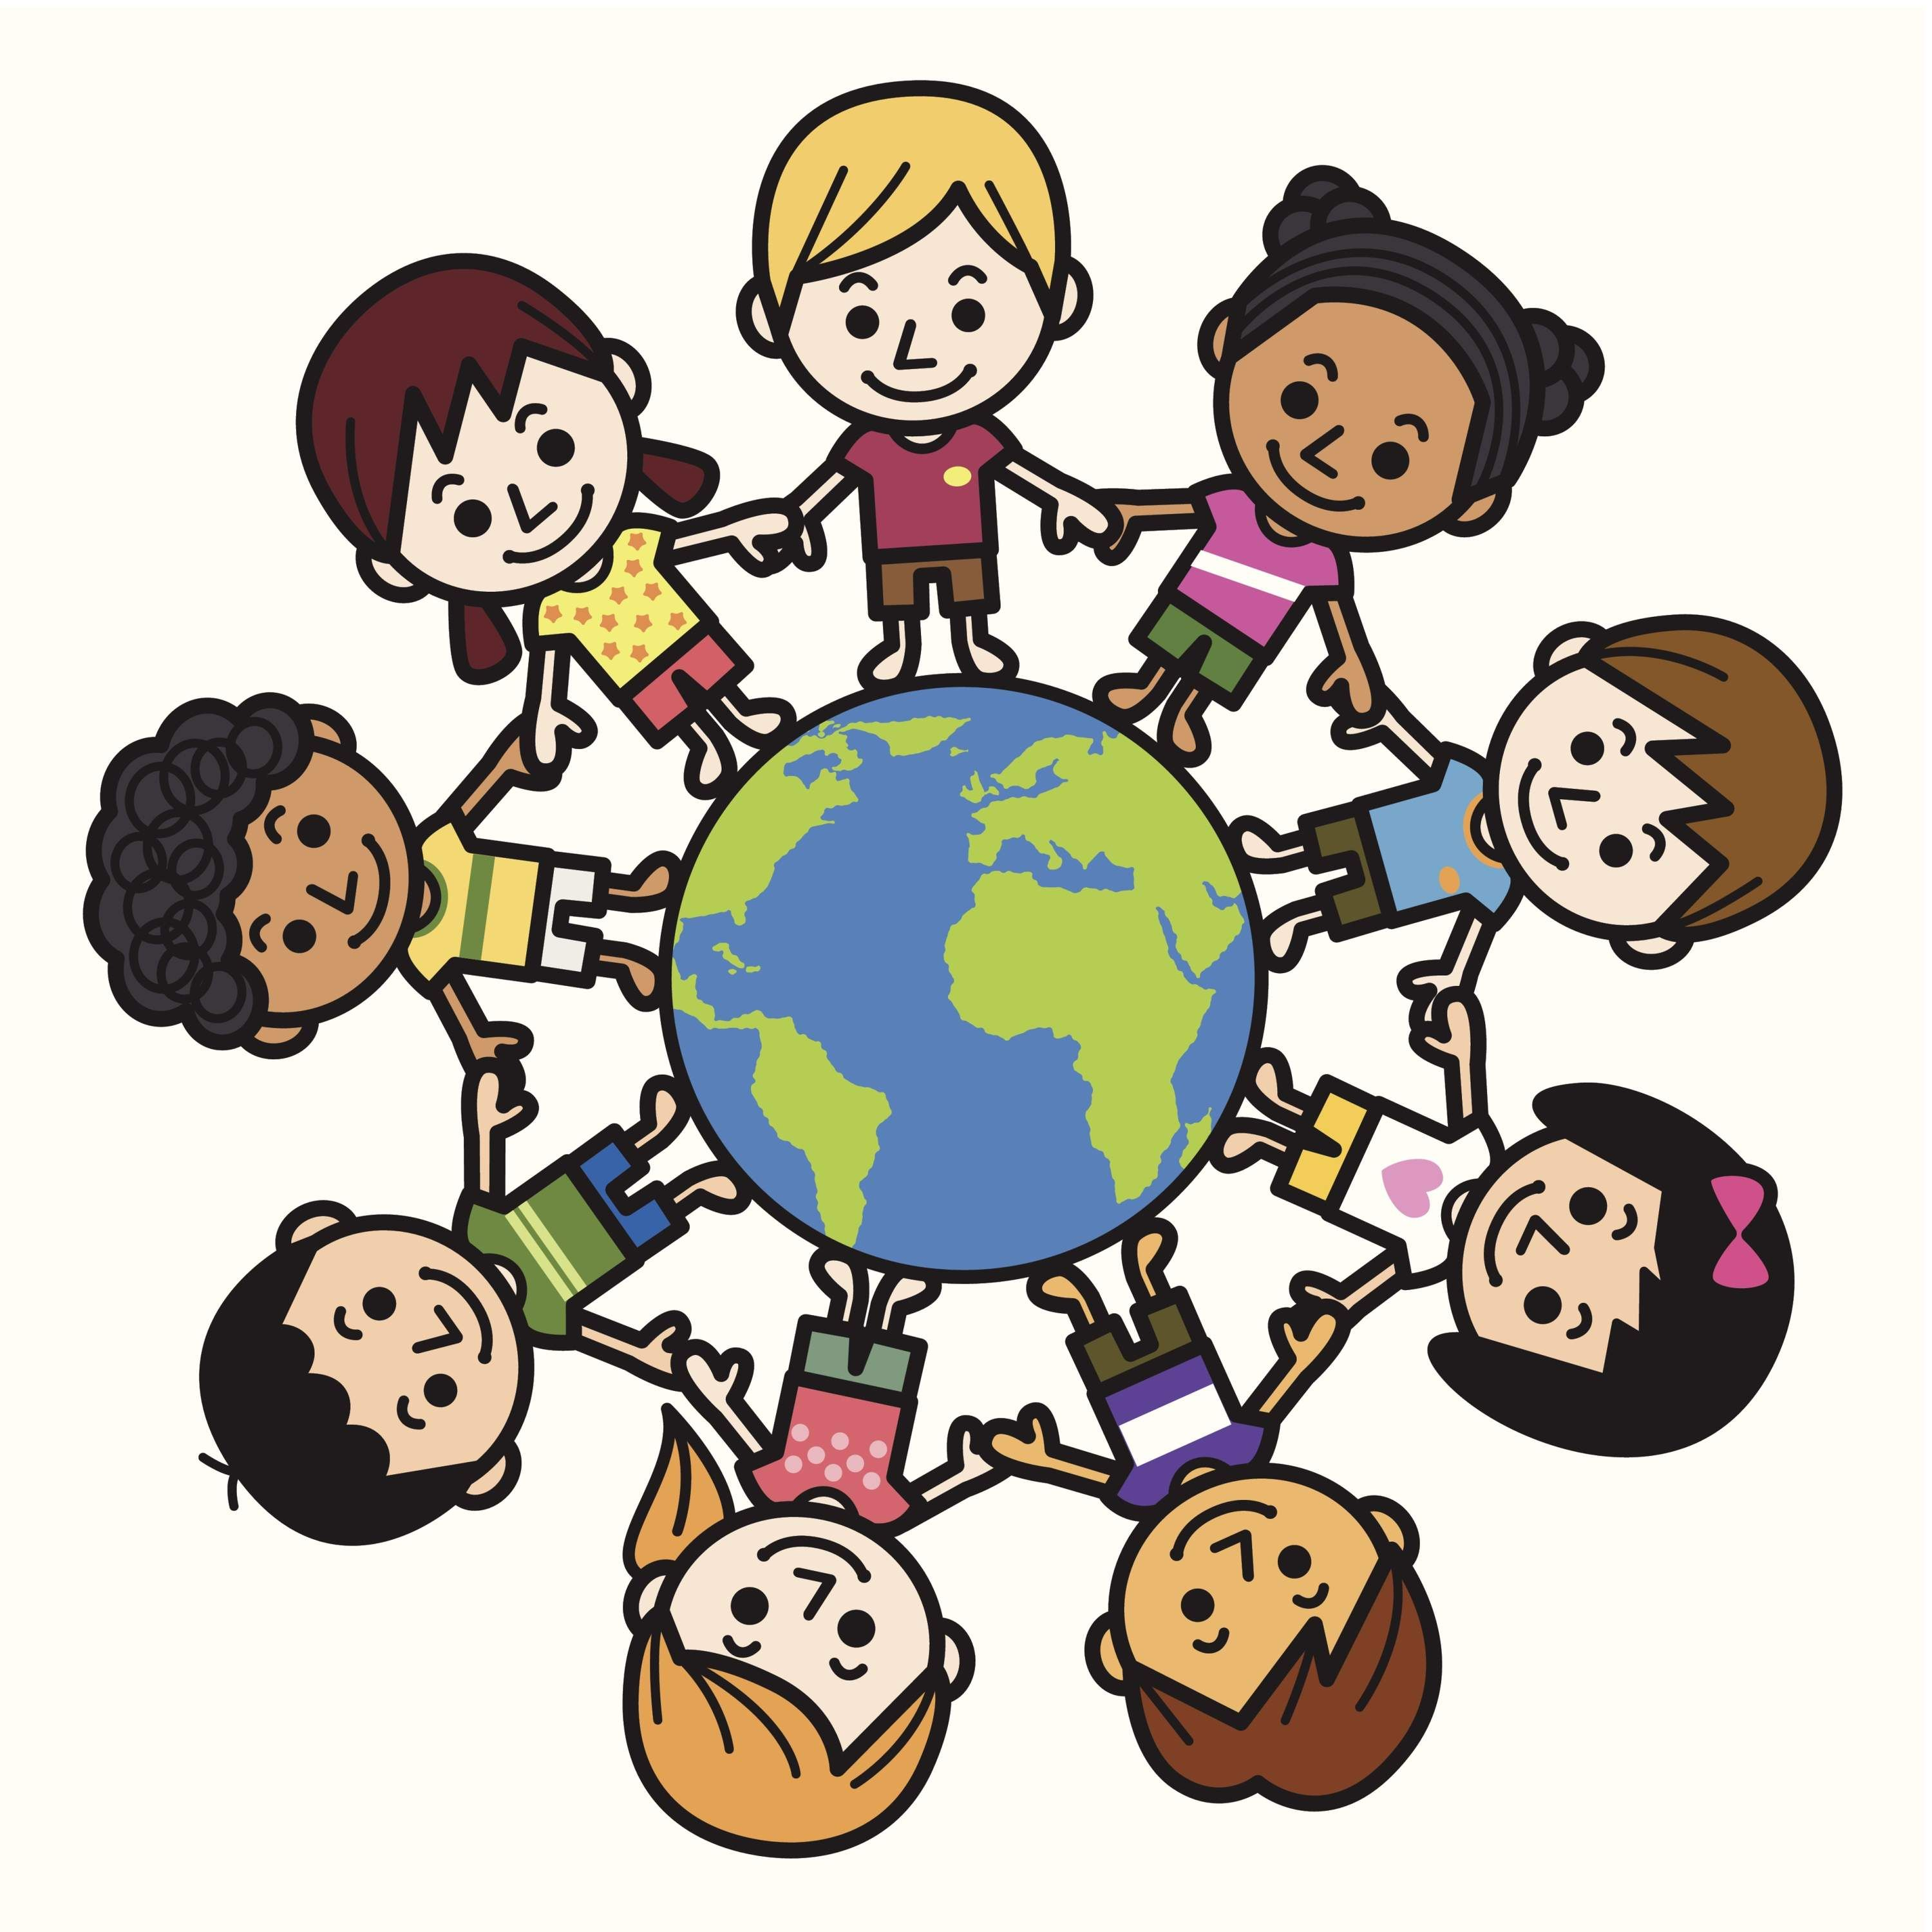 hight resolution of happy smiling multicultural kids around the world clipart free